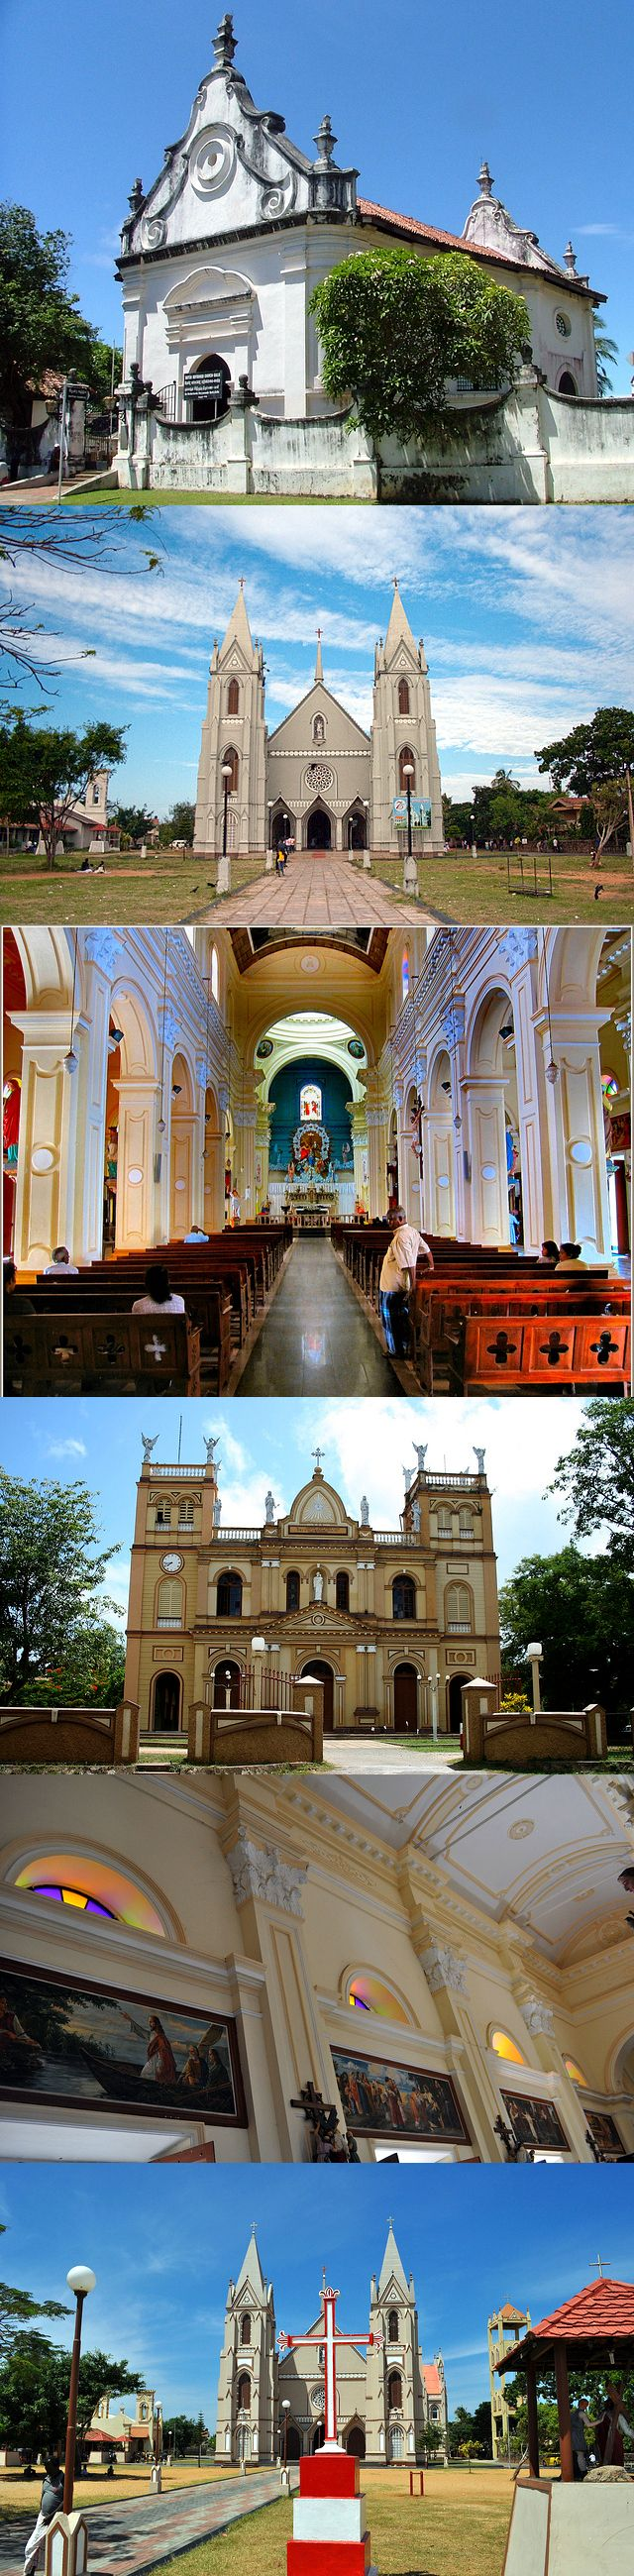 Churches in Negombo, Sri Lanka #SriLanka #Negombo #Churches